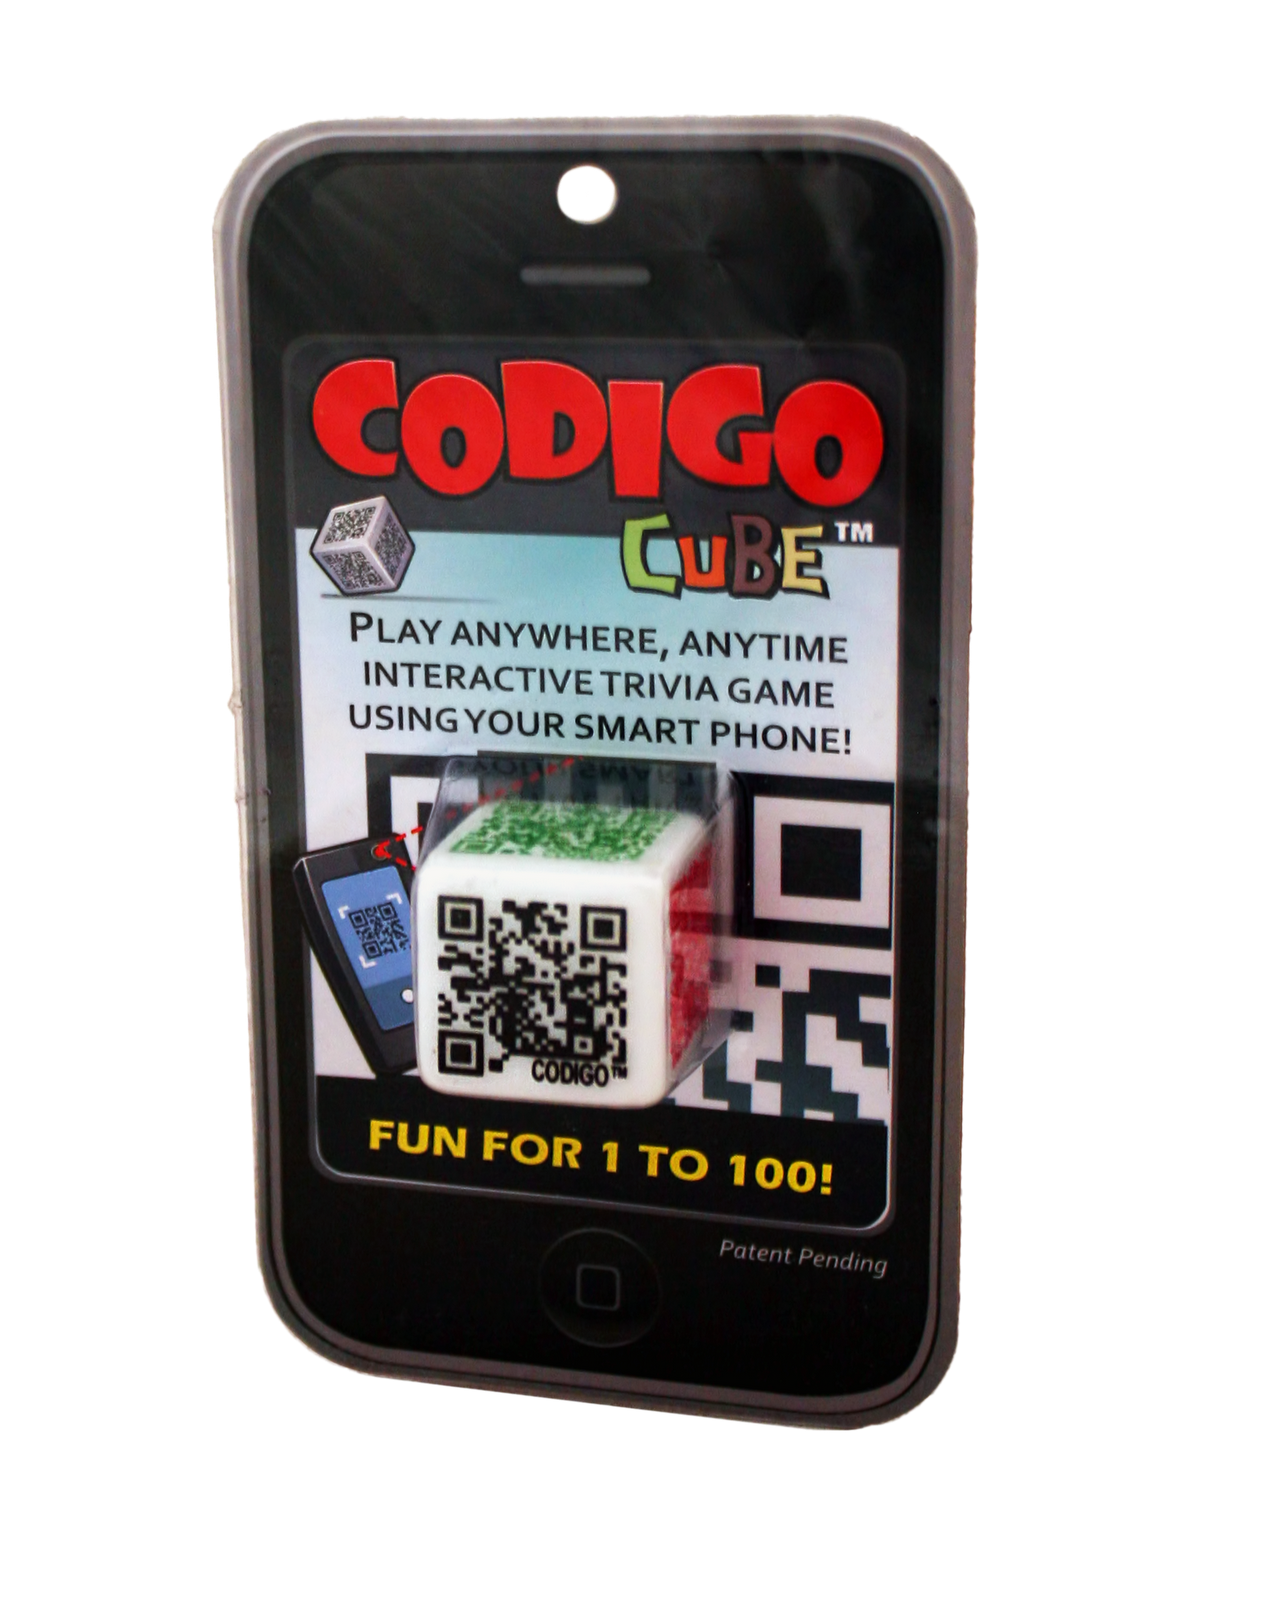 Cube Code Reader a Free qr Code Reader And